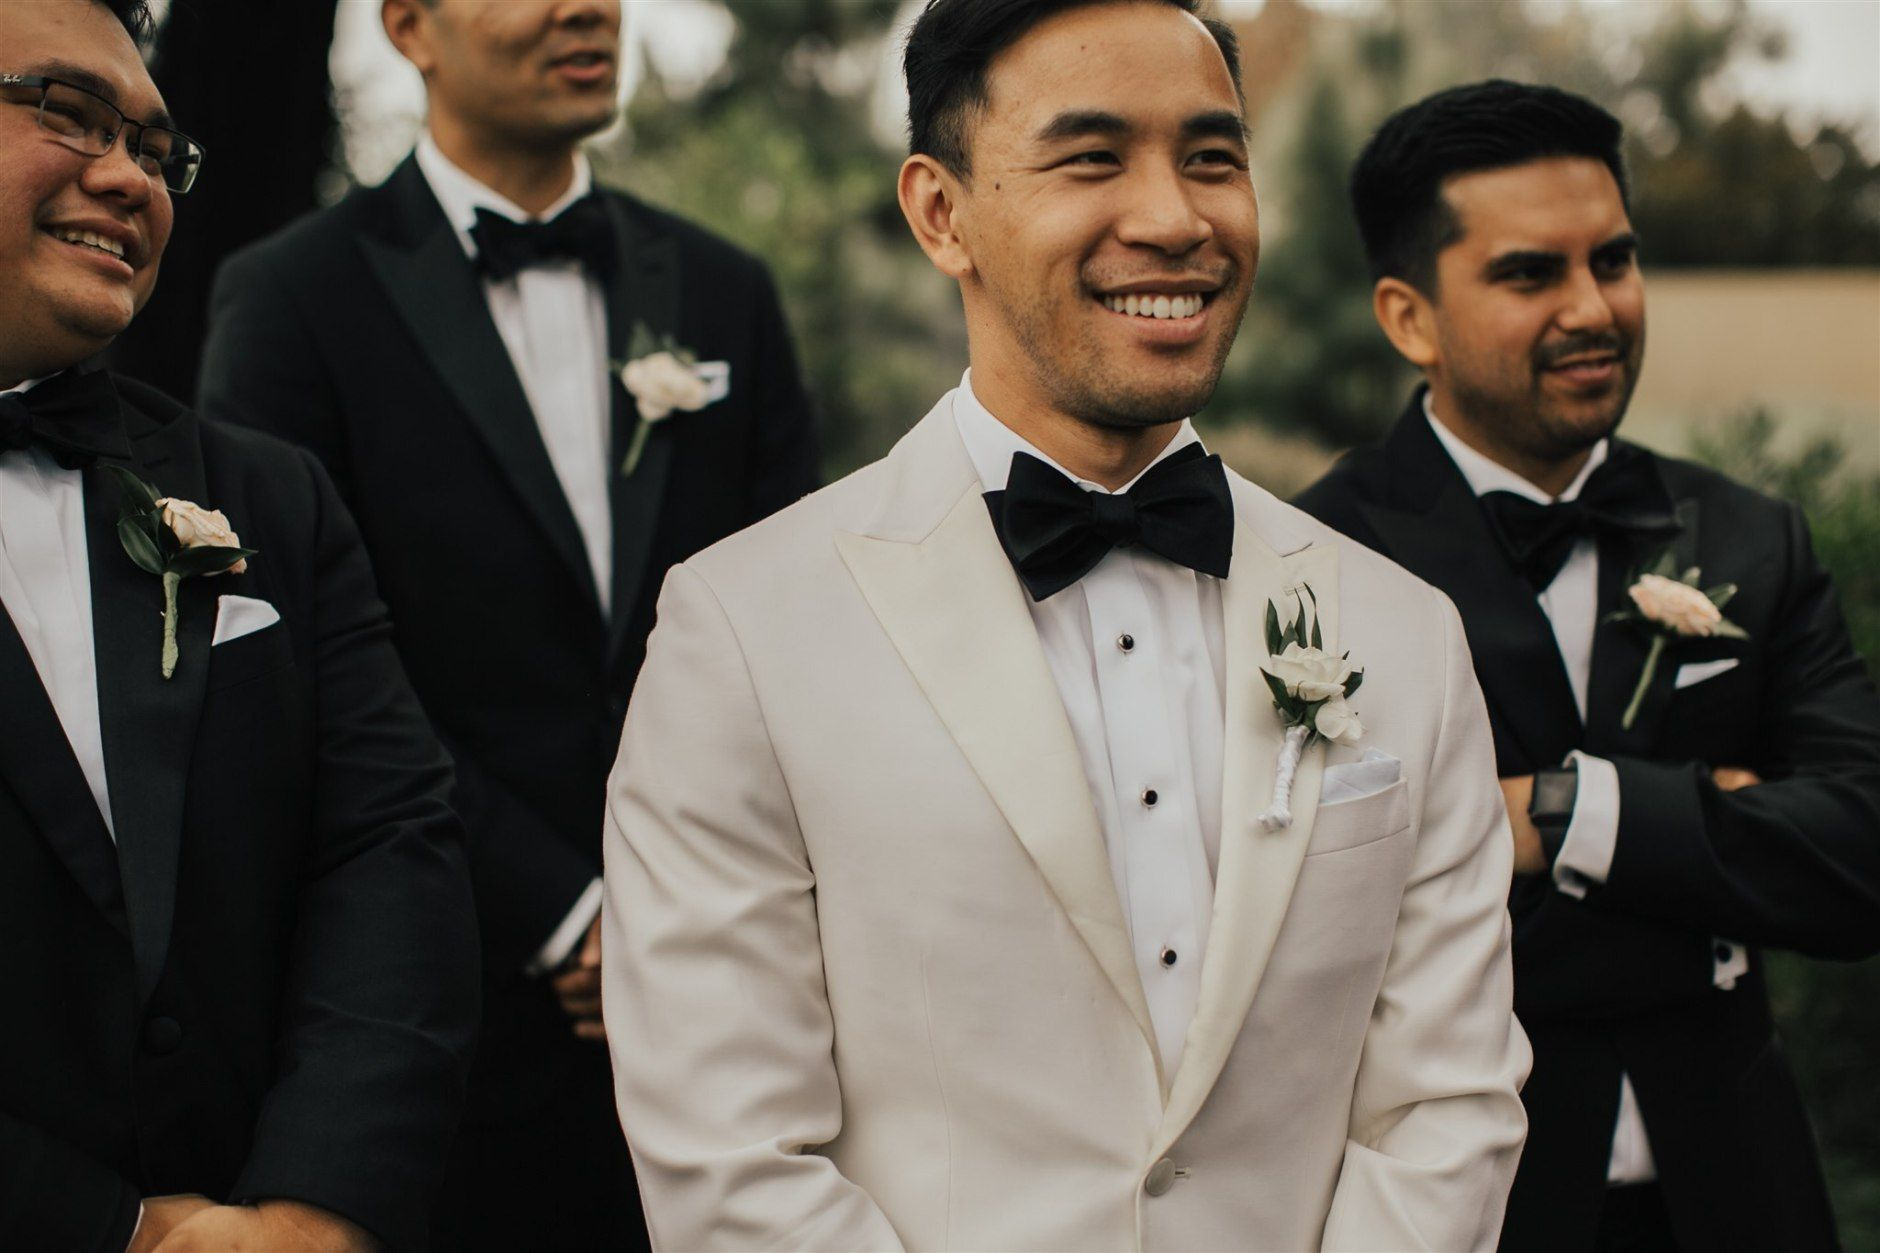 How Much Does A Tuxedo Rental Cost The Black Tux Blog Black Tie Wedding Attire Black Tie Wedding The Black Tux